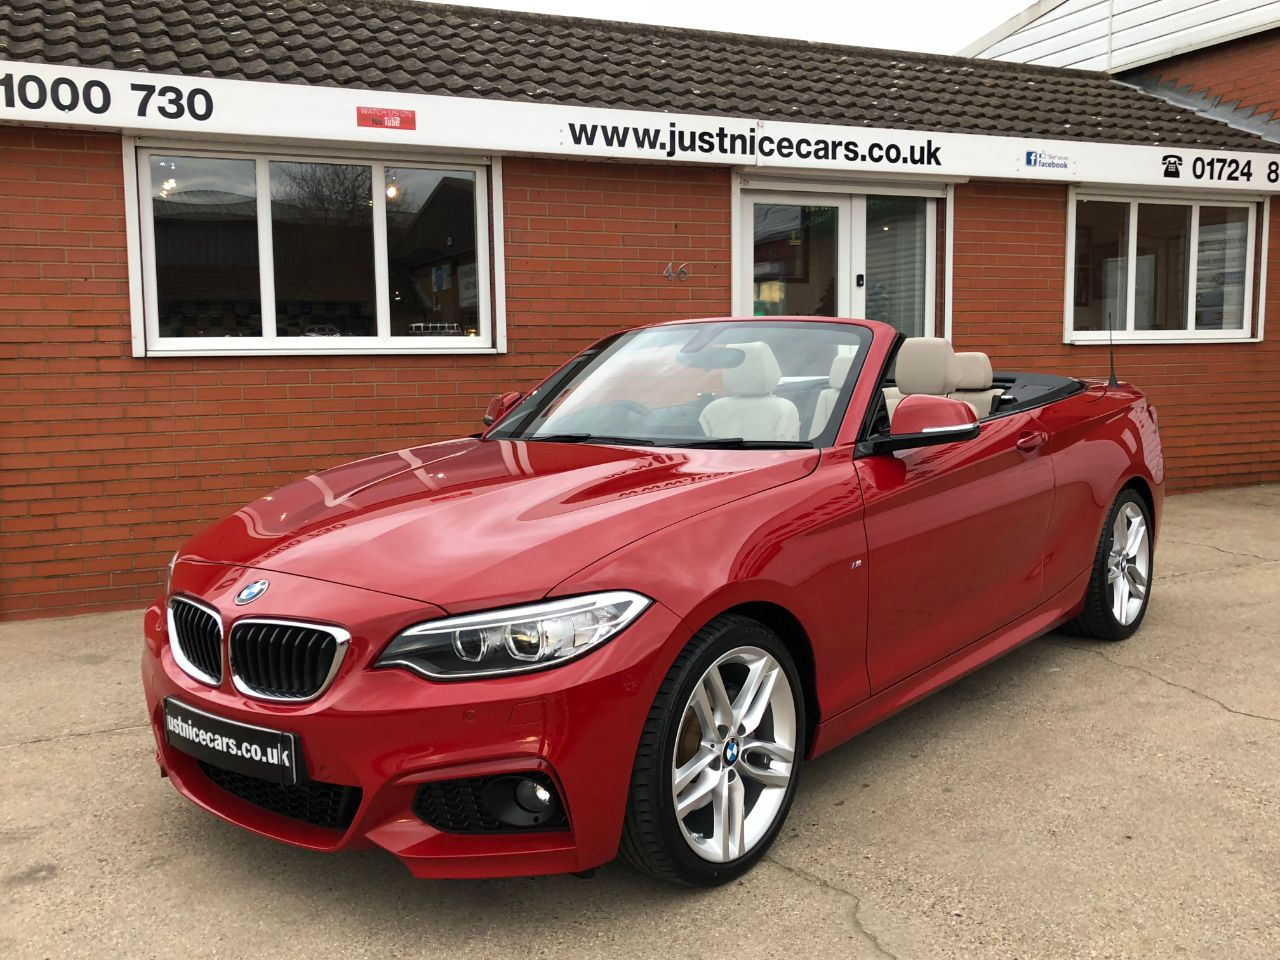 BMW 2 Series 2.0 220d M-Sport Convertible ~£3,775 Options~ Convertible Diesel Red